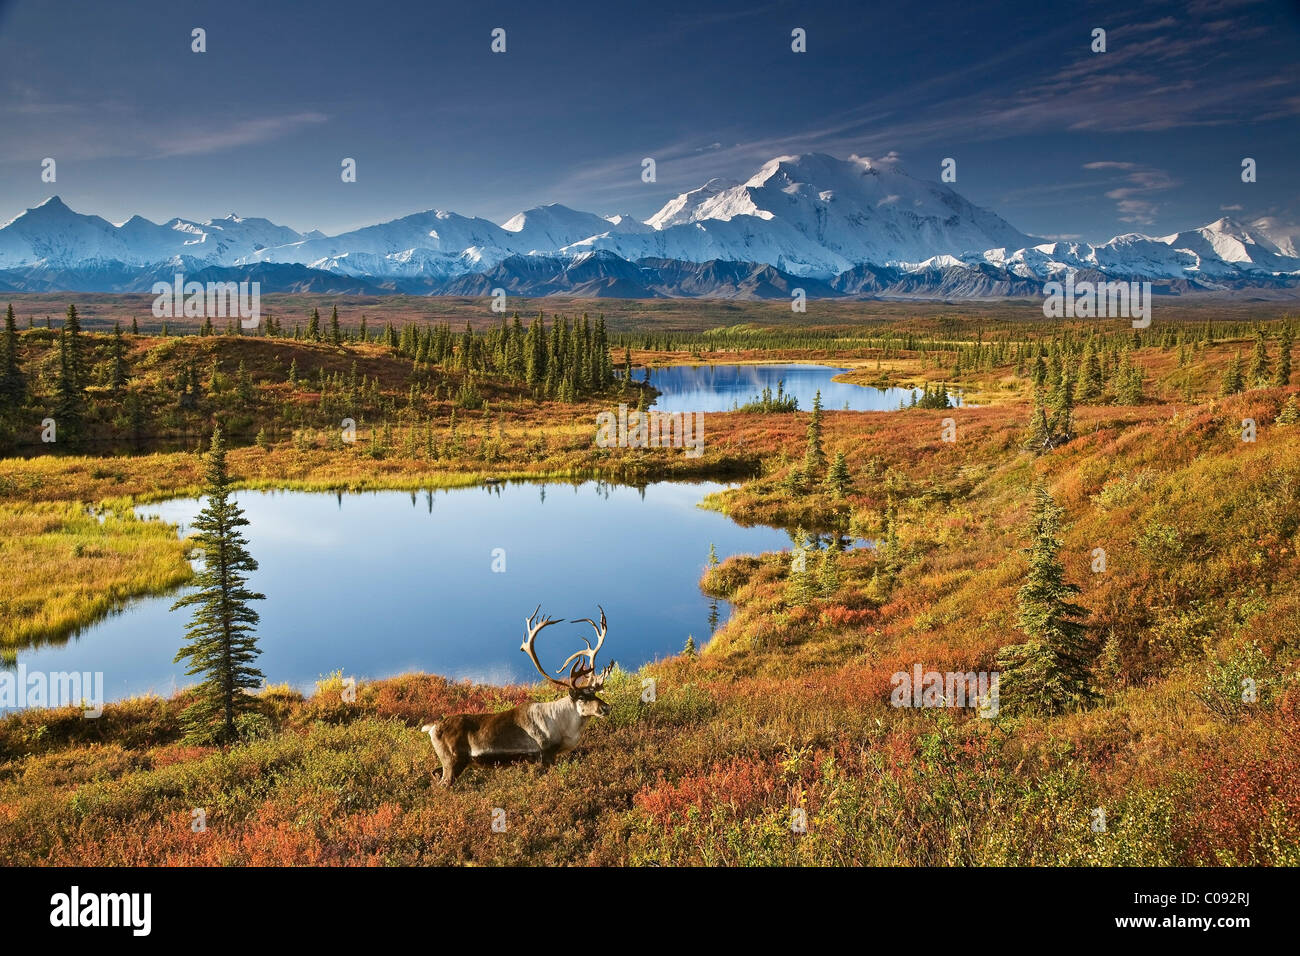 Bull caribou and tundra pond with Mt. McKinley in the background, Denali National Park, Alaska COMPOSITE - Stock Image